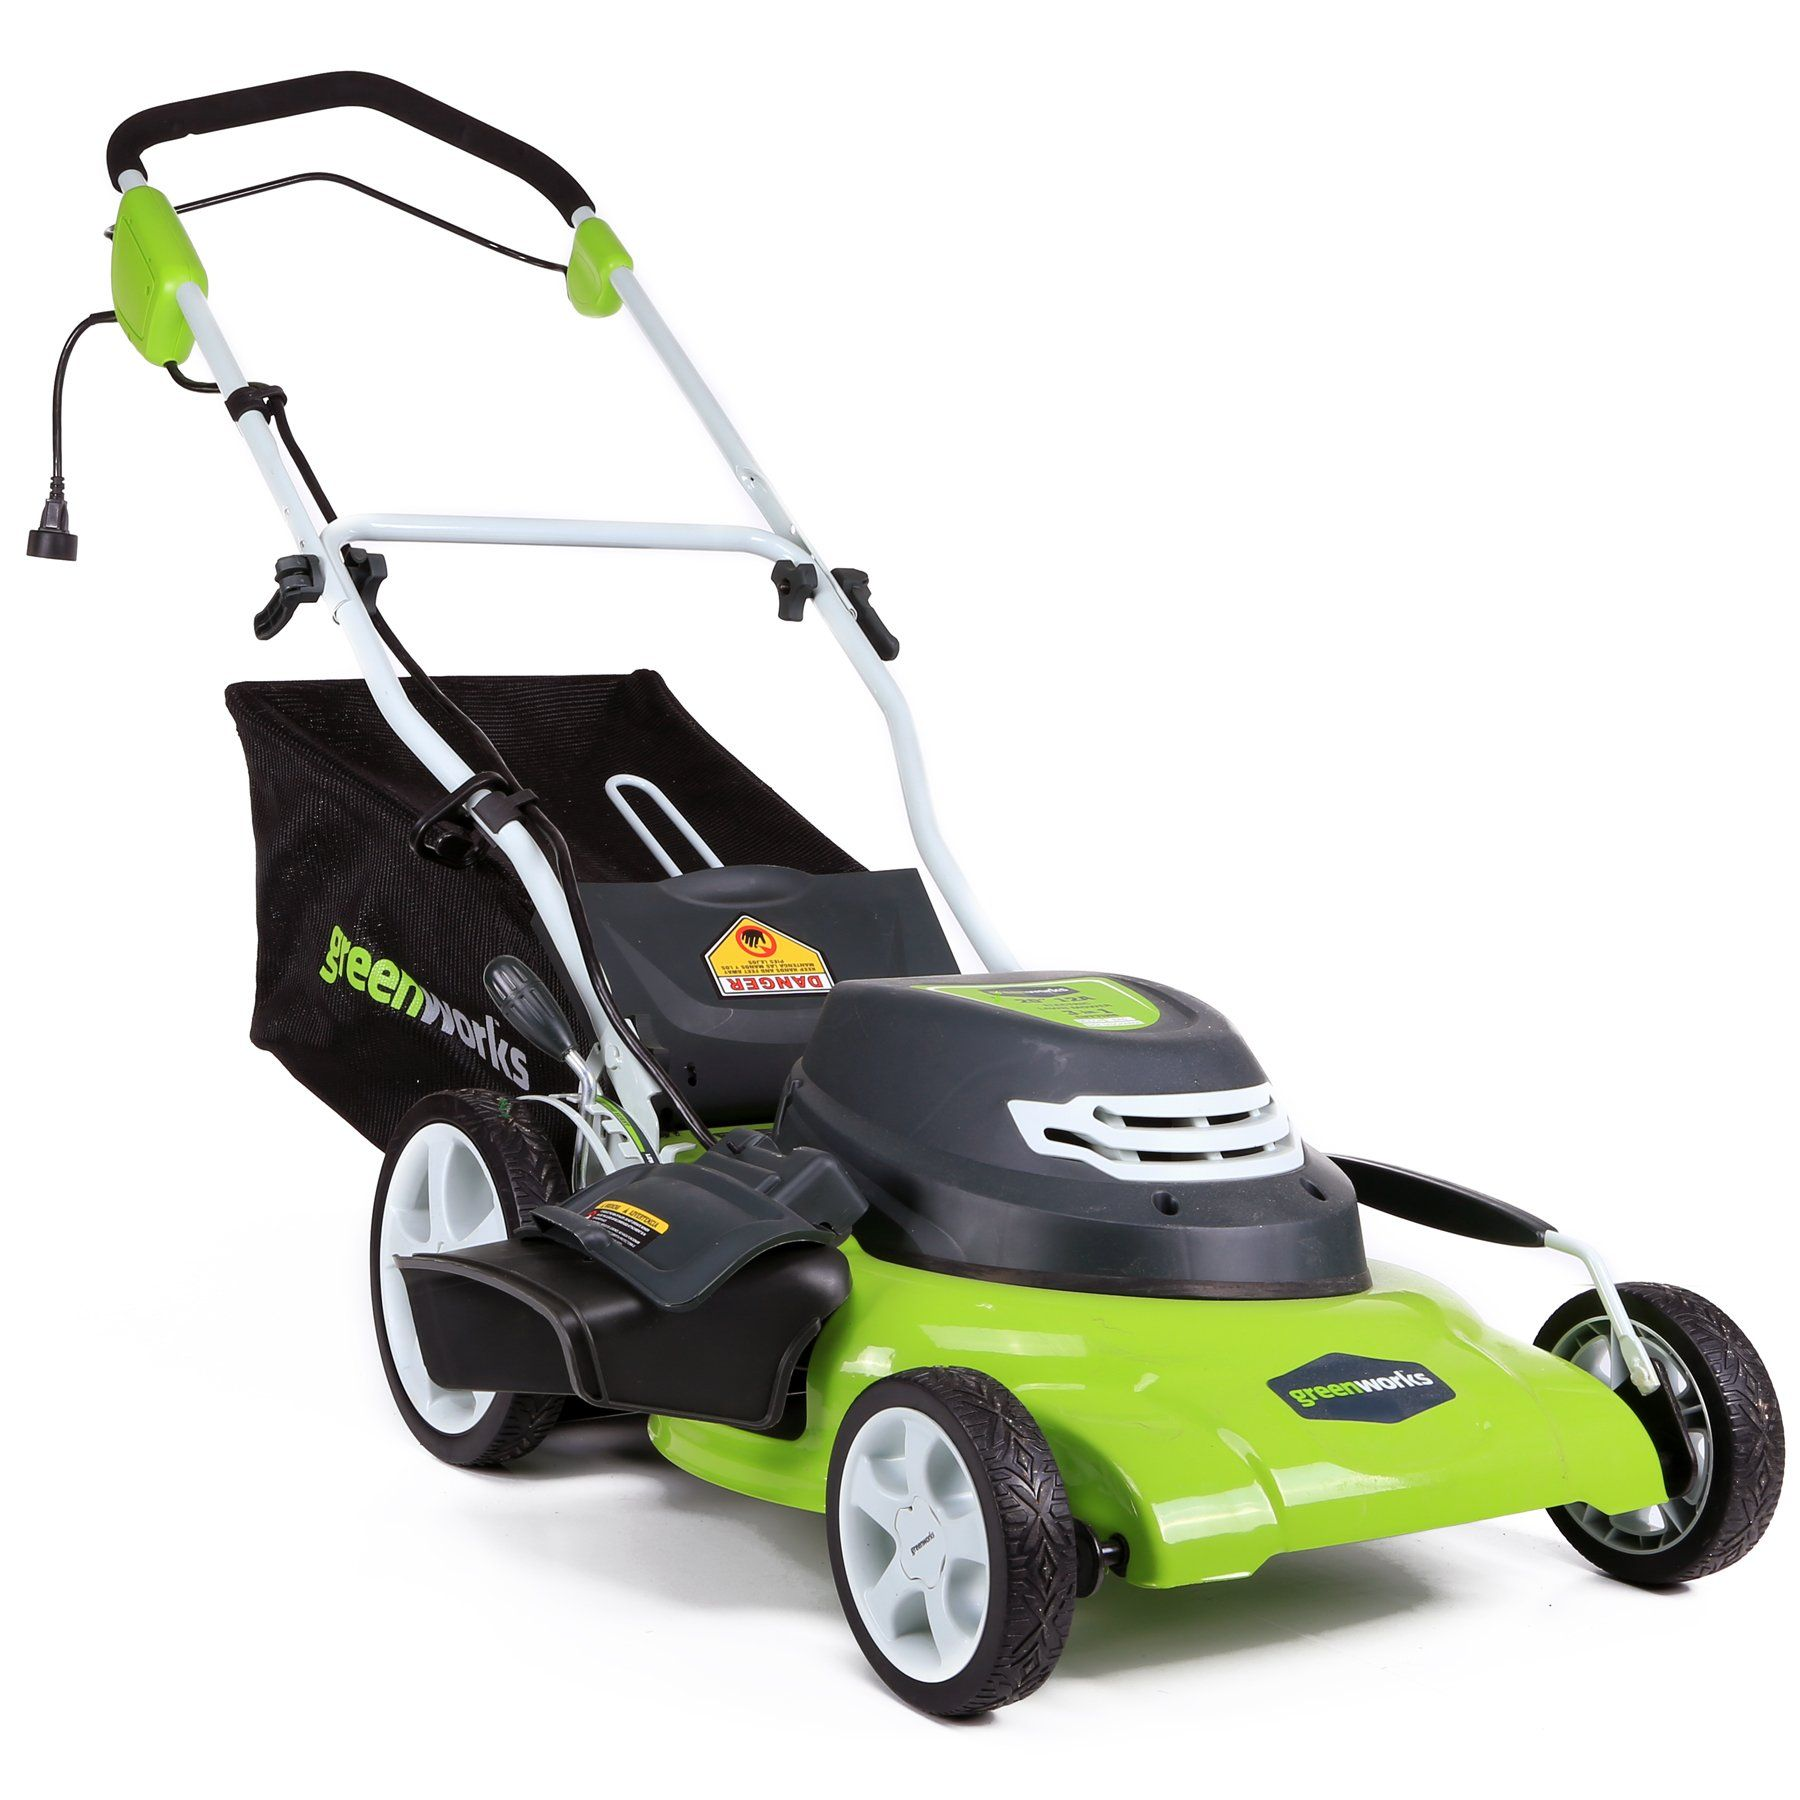 Greenworks 20inch 12 Amp Corded Lawn Mower 25022 Find Out More